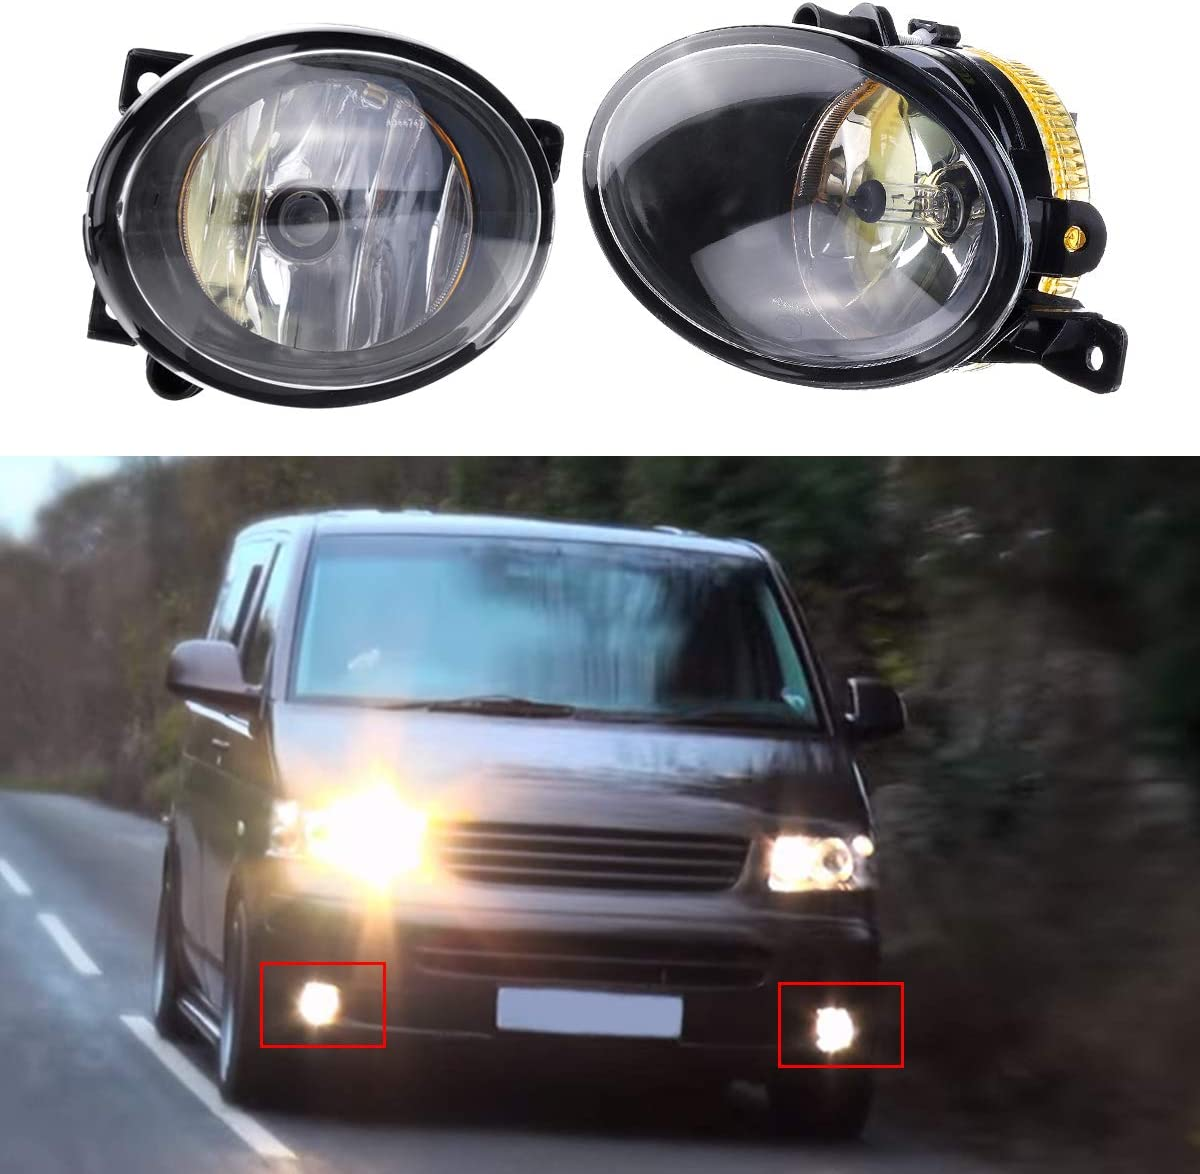 Niceen Car Front Fog Lights Spot Lamp with Bulb Amber for VW T5 T5.1 Transporter 2010 On Right